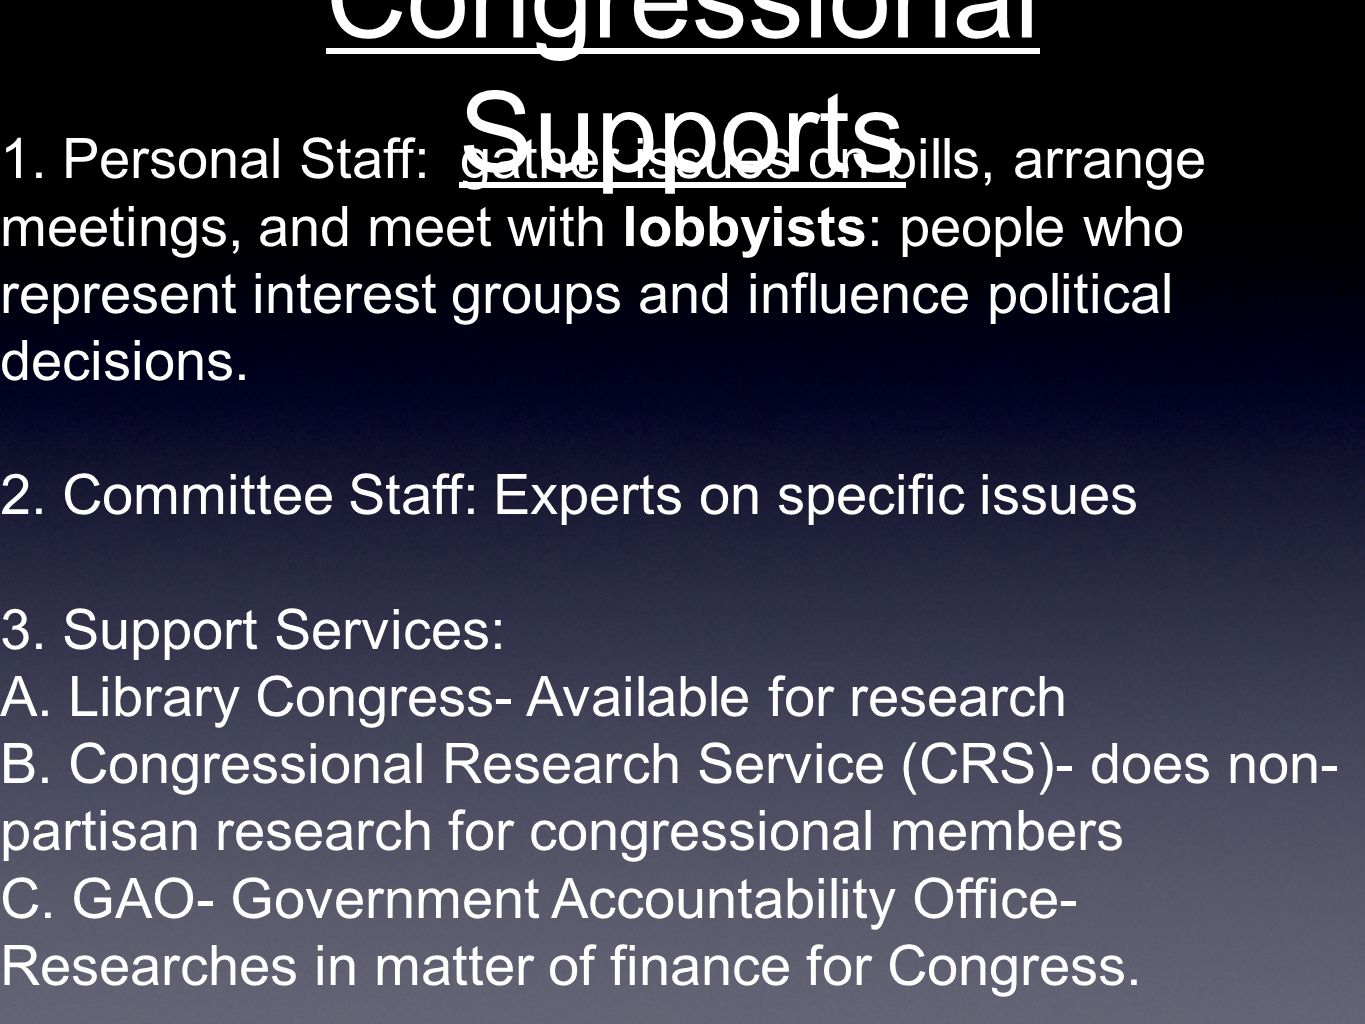 Congressional Supports 1. Personal Staff: gather issues on bills, arrange meetings, and meet with lobbyists: people who represent interest groups and